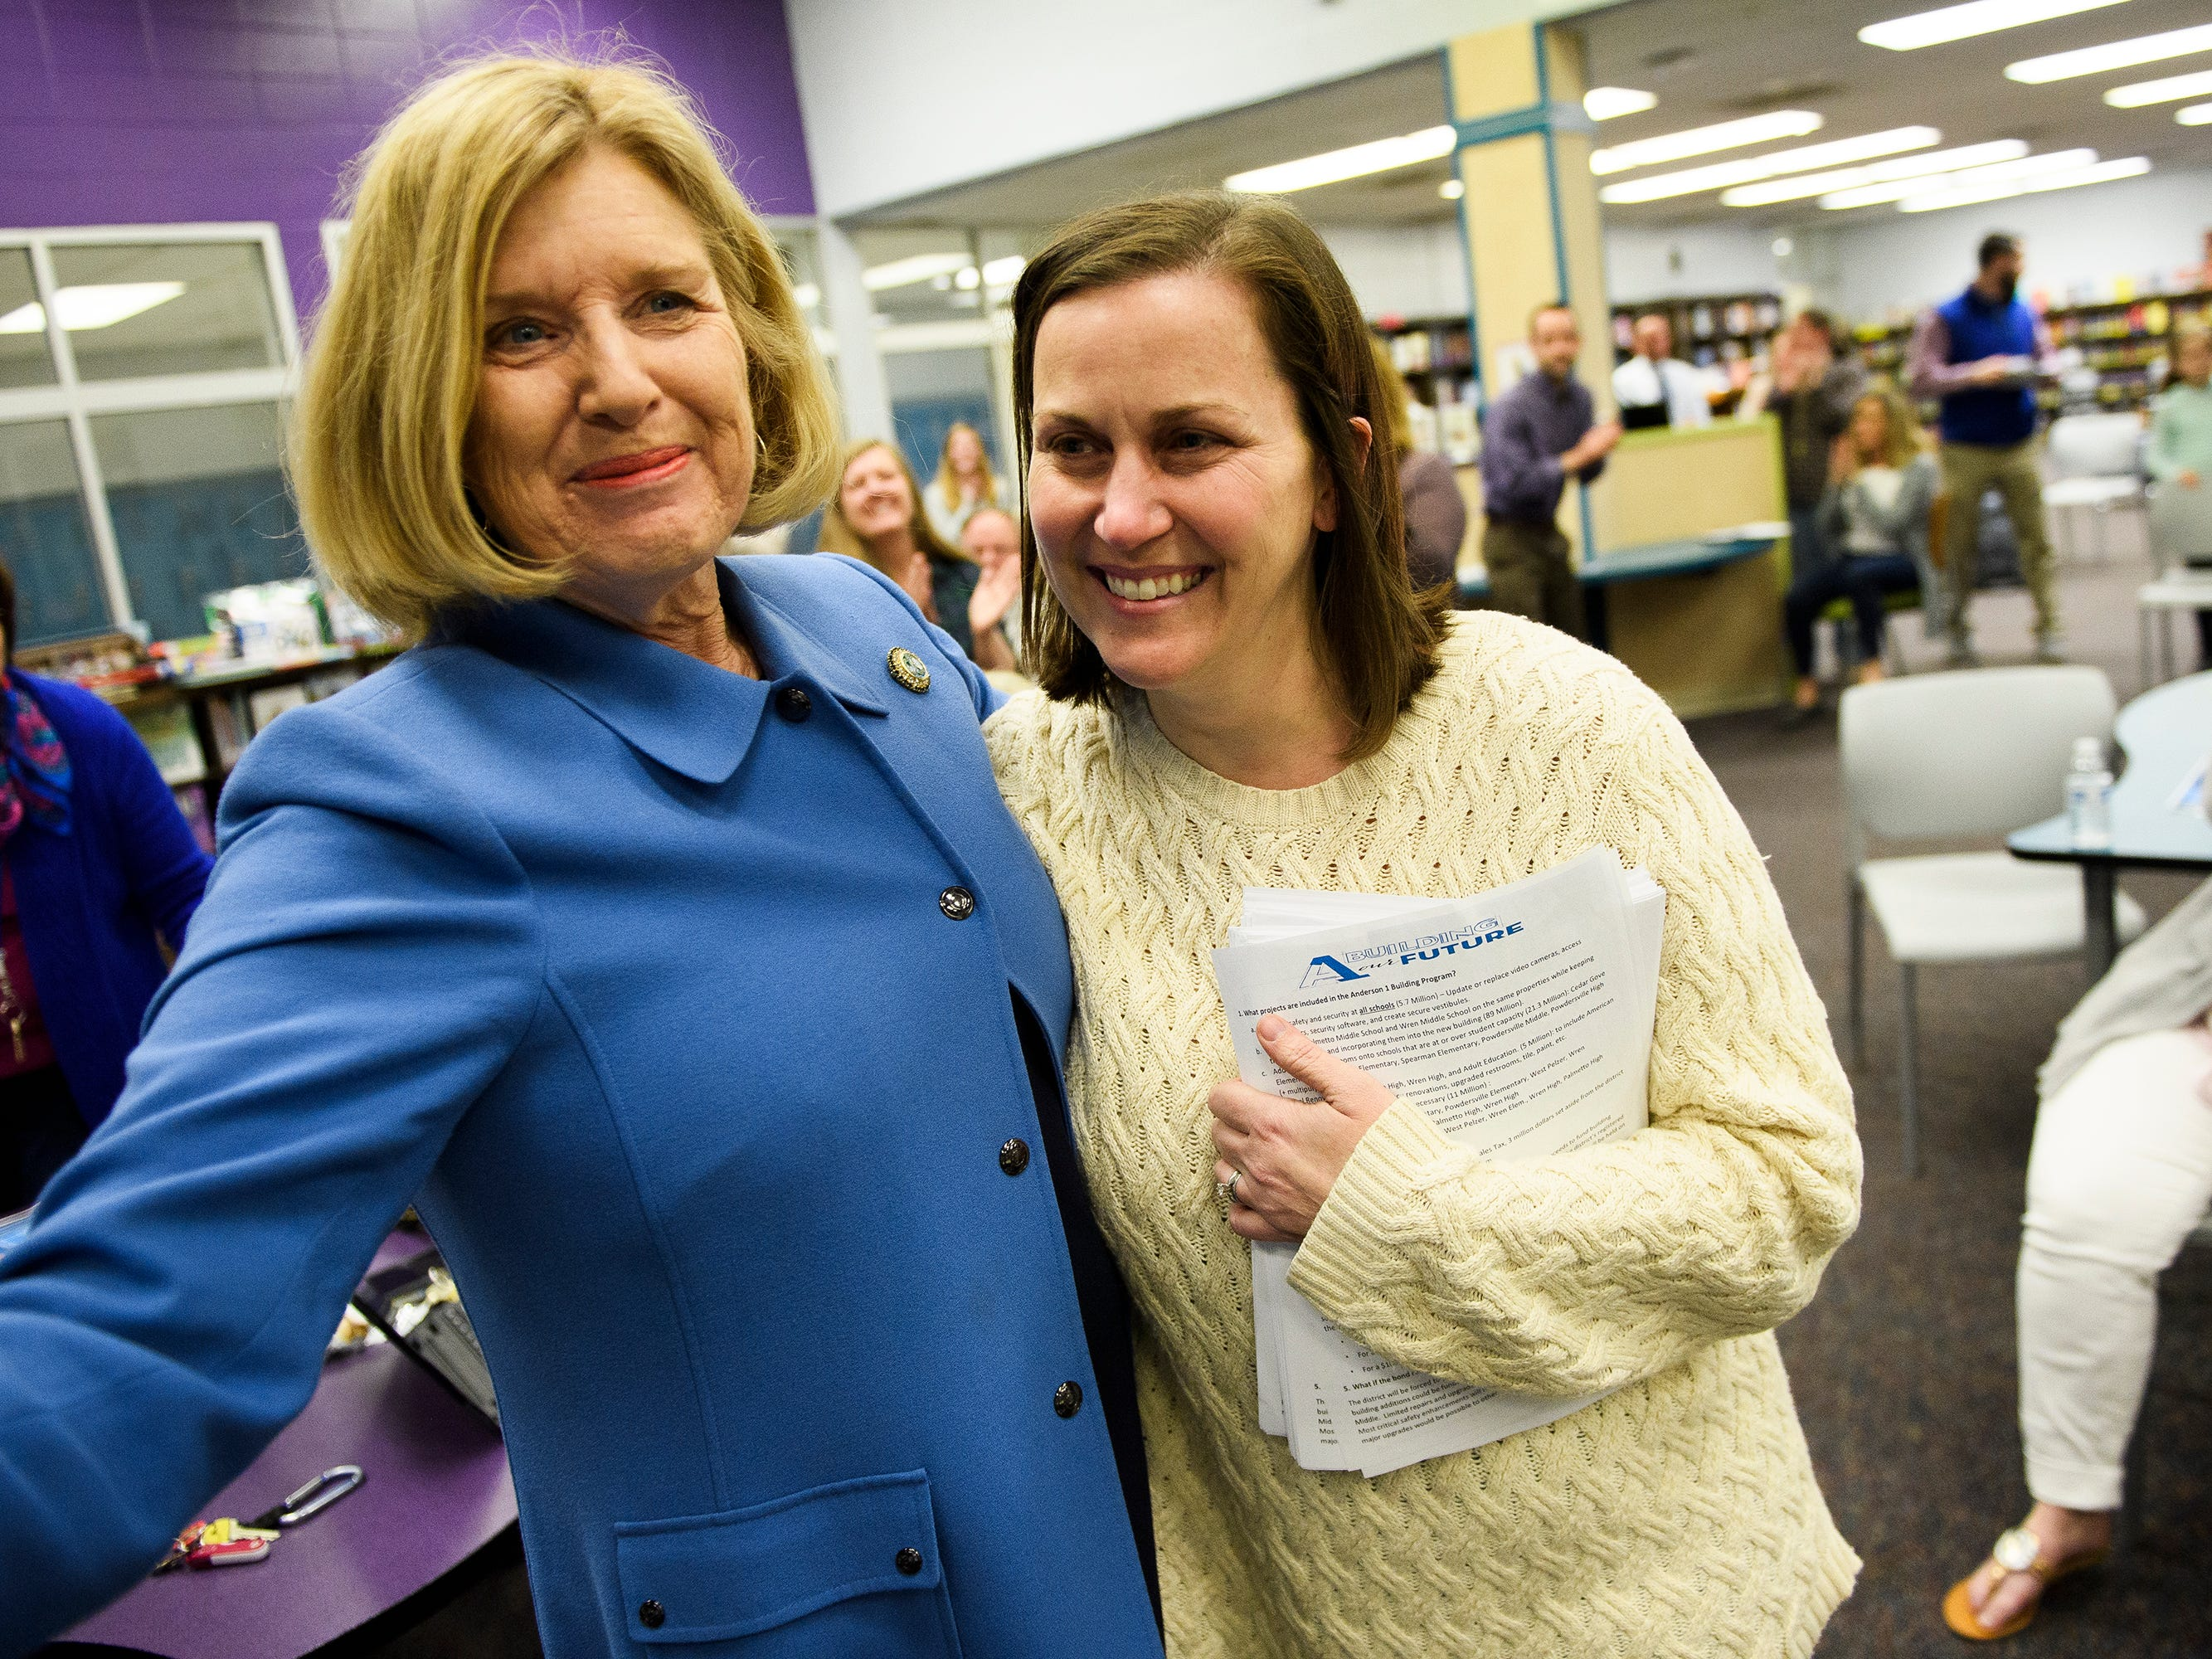 Superintendent of Education Molly Spearman congratulates Tamara Cox as it is announced she is one of five finalists for South Carolina Teacher of the Year at Wren High School Wednesday, March 13, 2019.